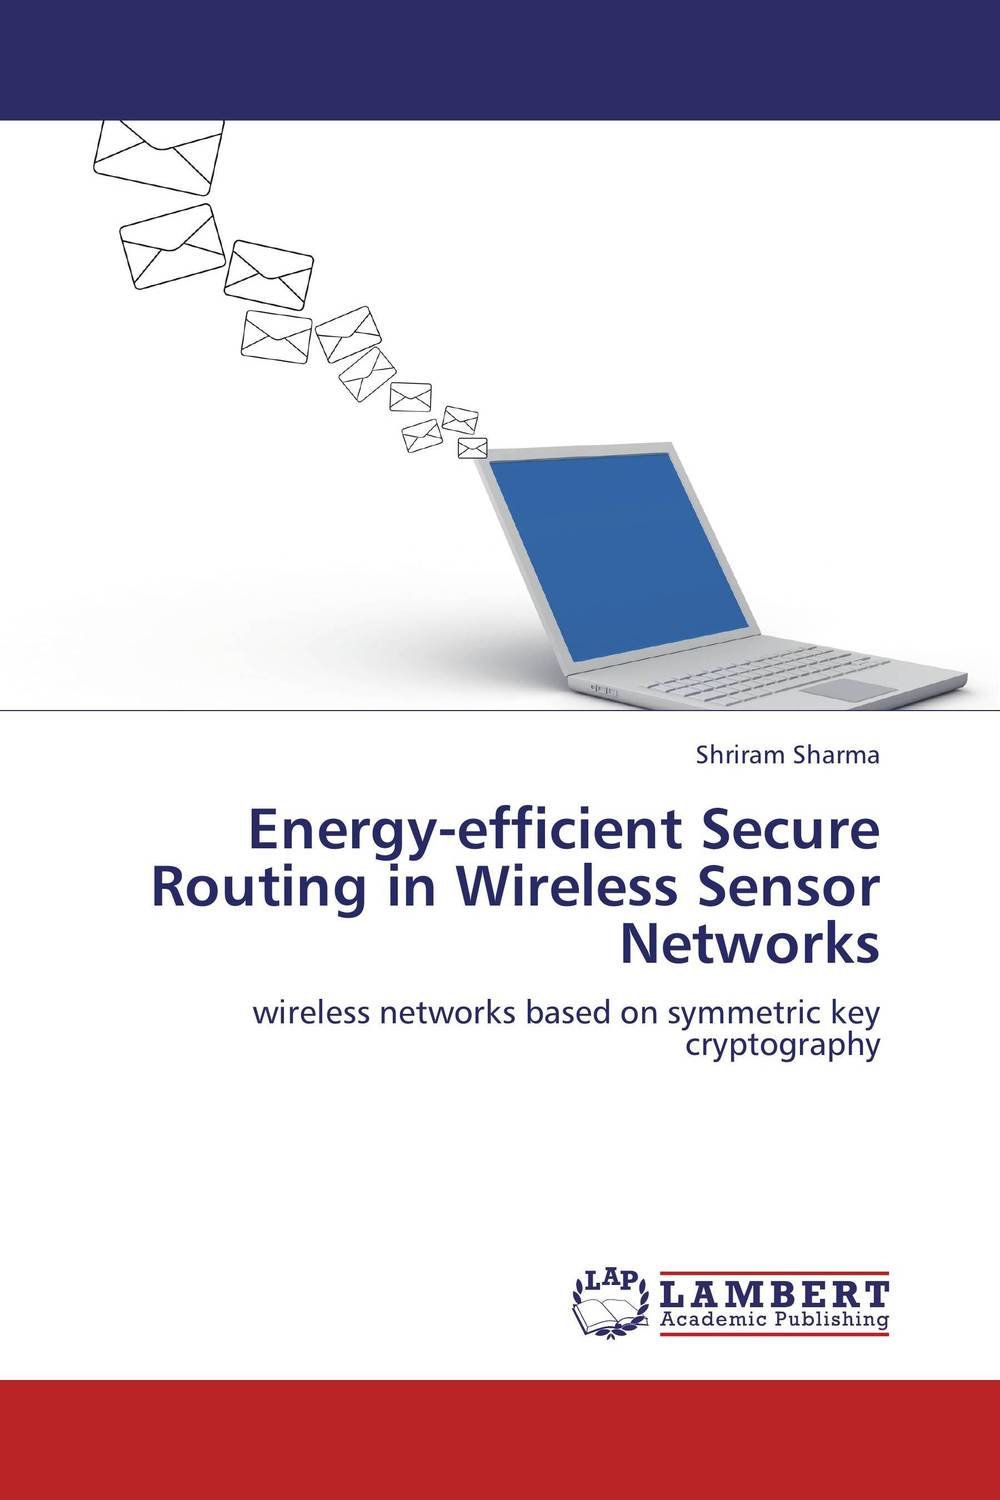 Energy-efficient Secure Routing in Wireless Sensor Networks cluster based data labeling for categorical data